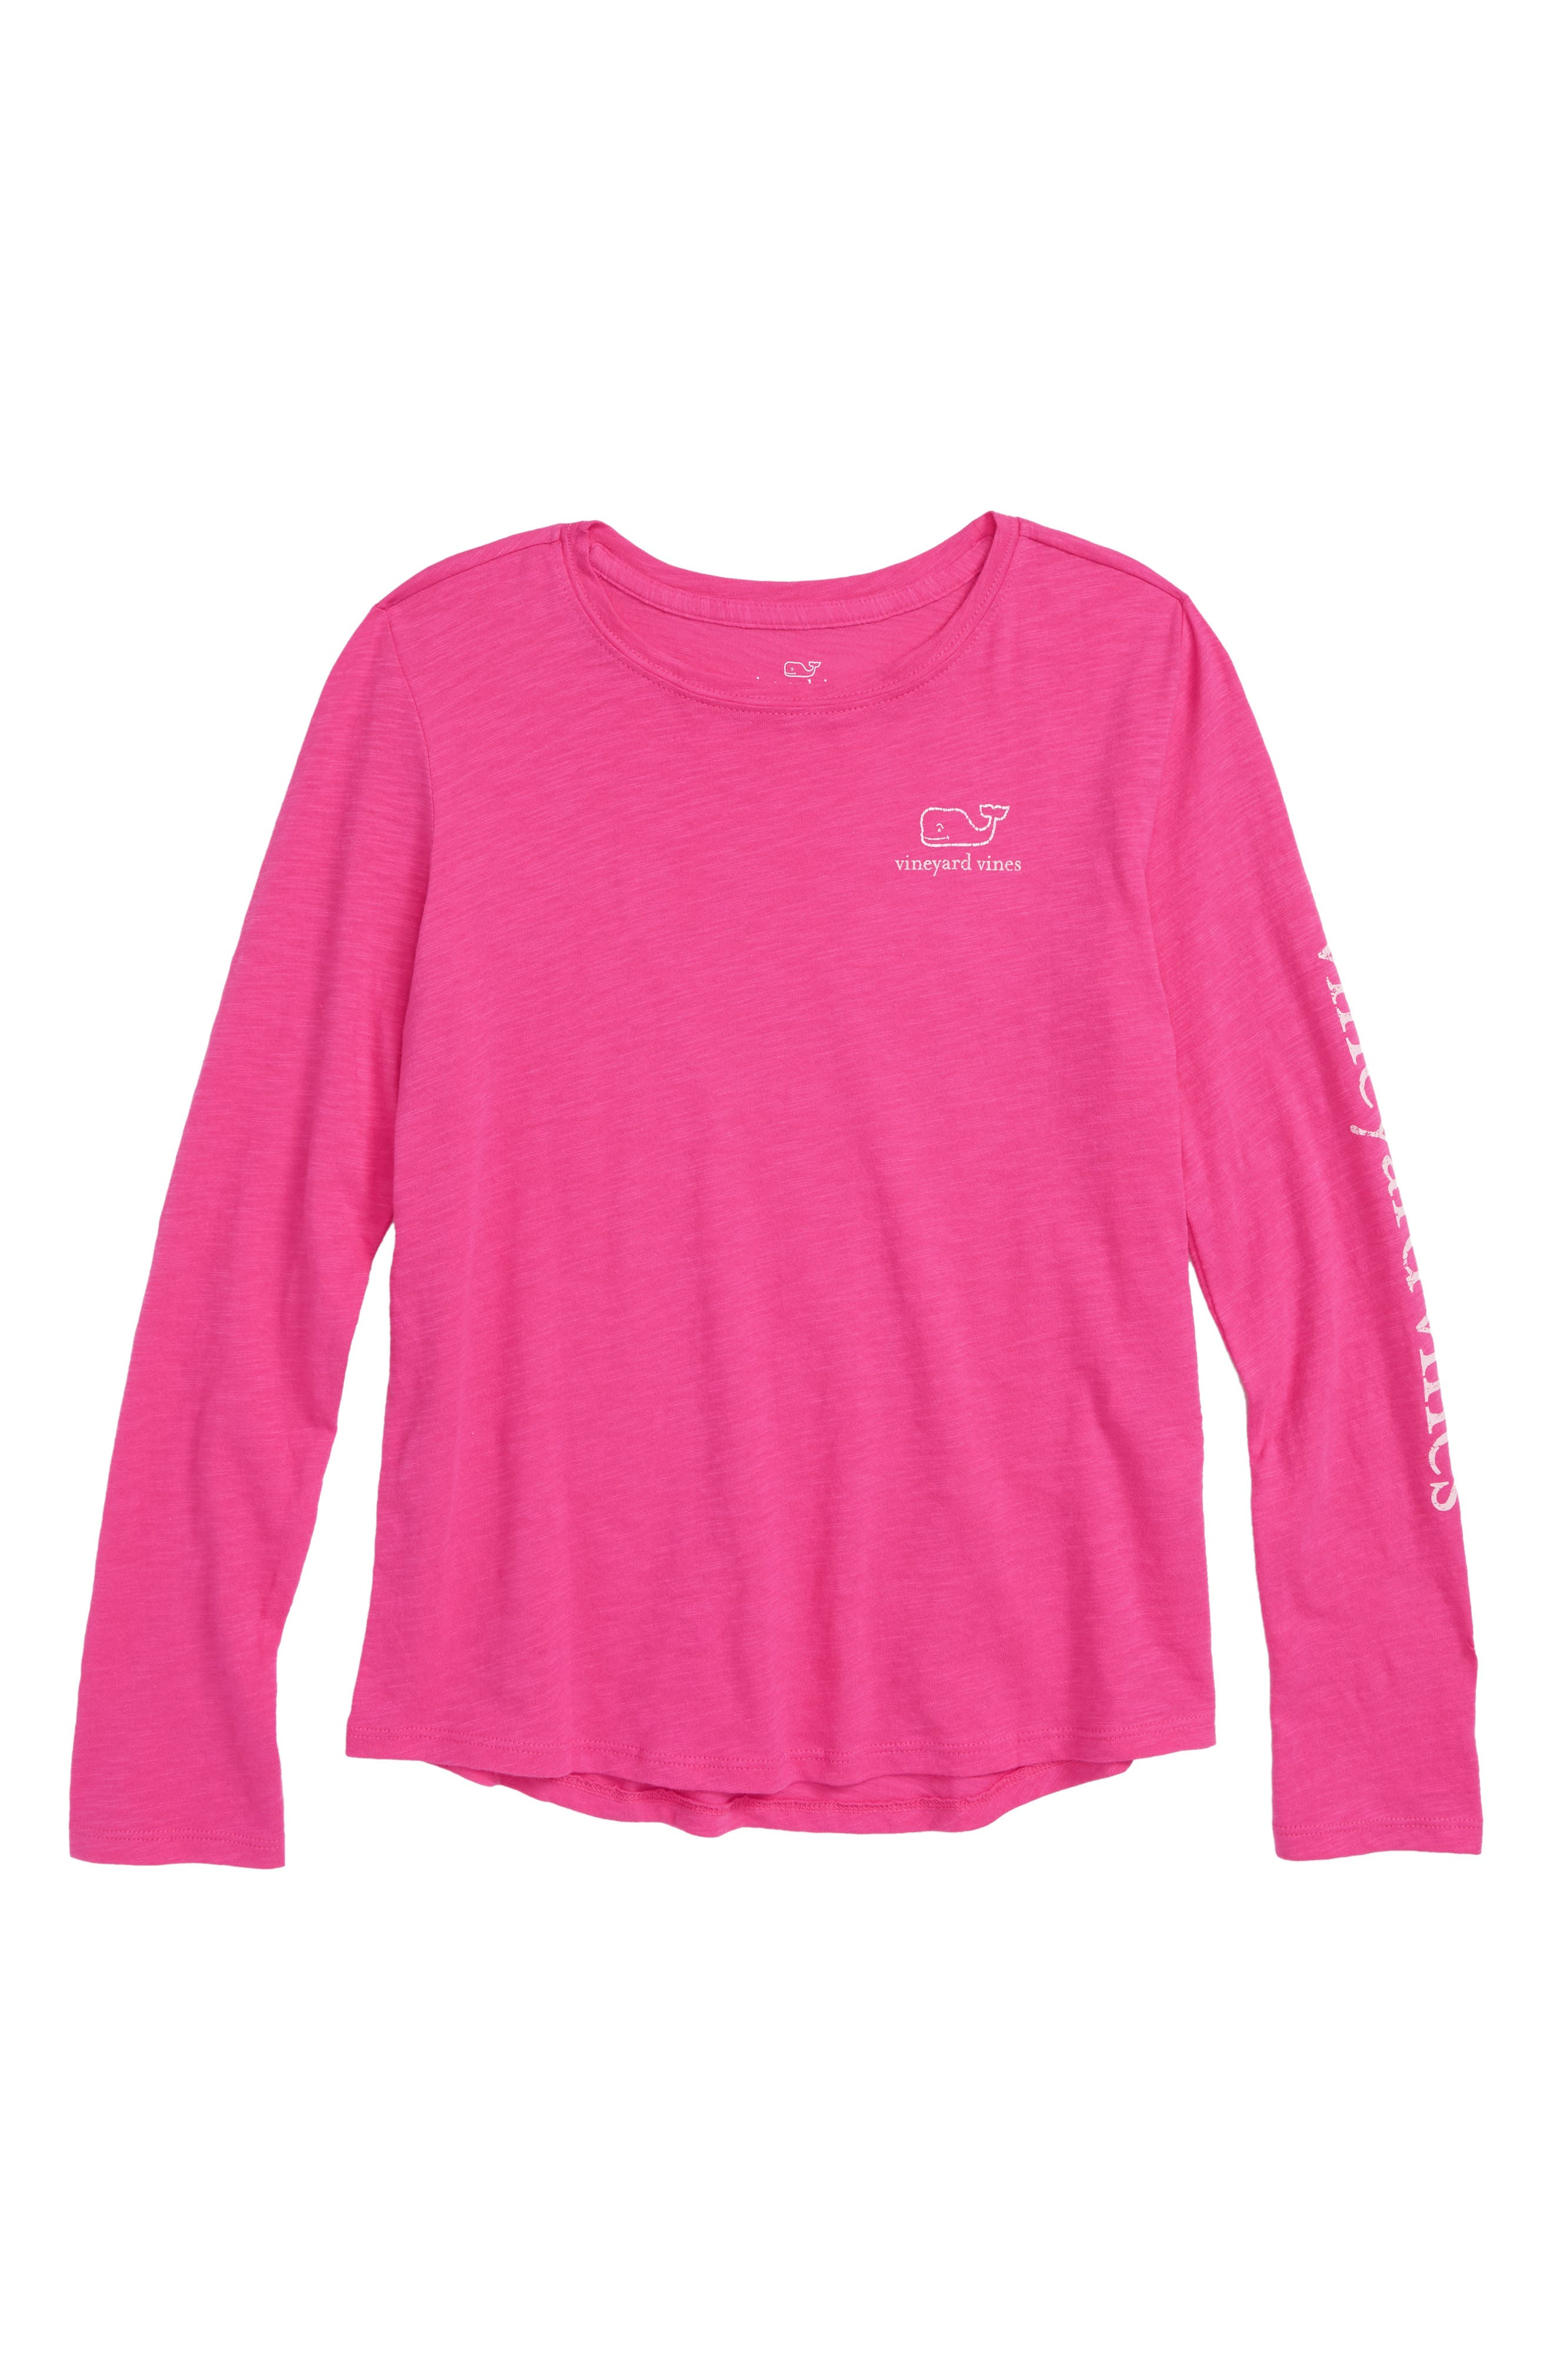 Whale Long Sleeve Tee,                         Main,                         color, RHODODENDRON 2